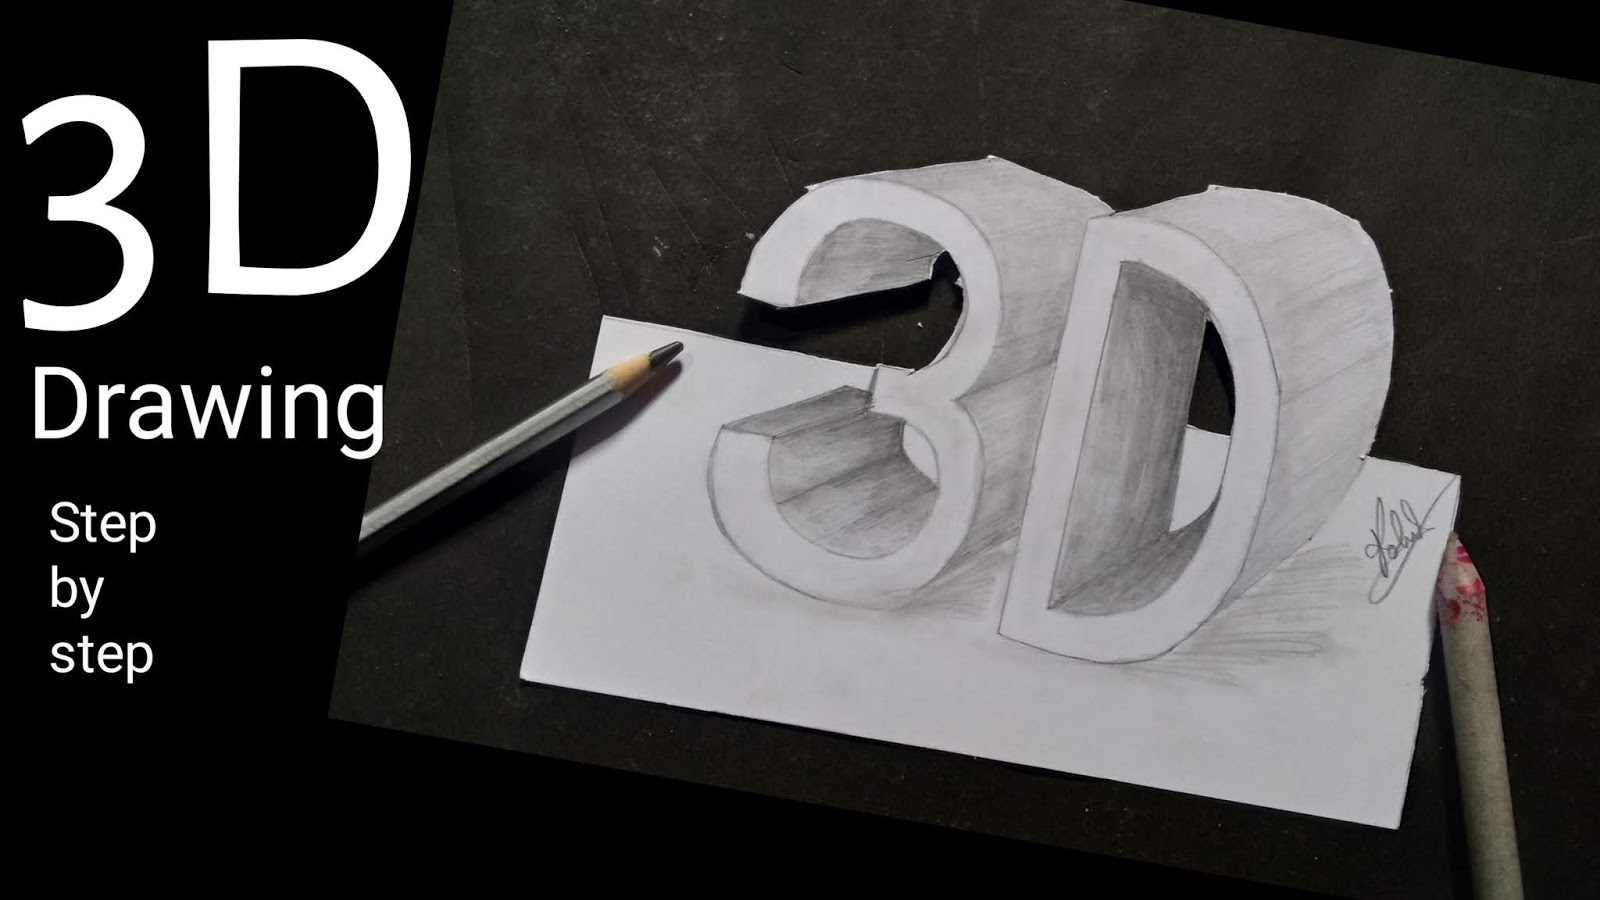 How to draw 3d block letter step by step to draw easy drawing